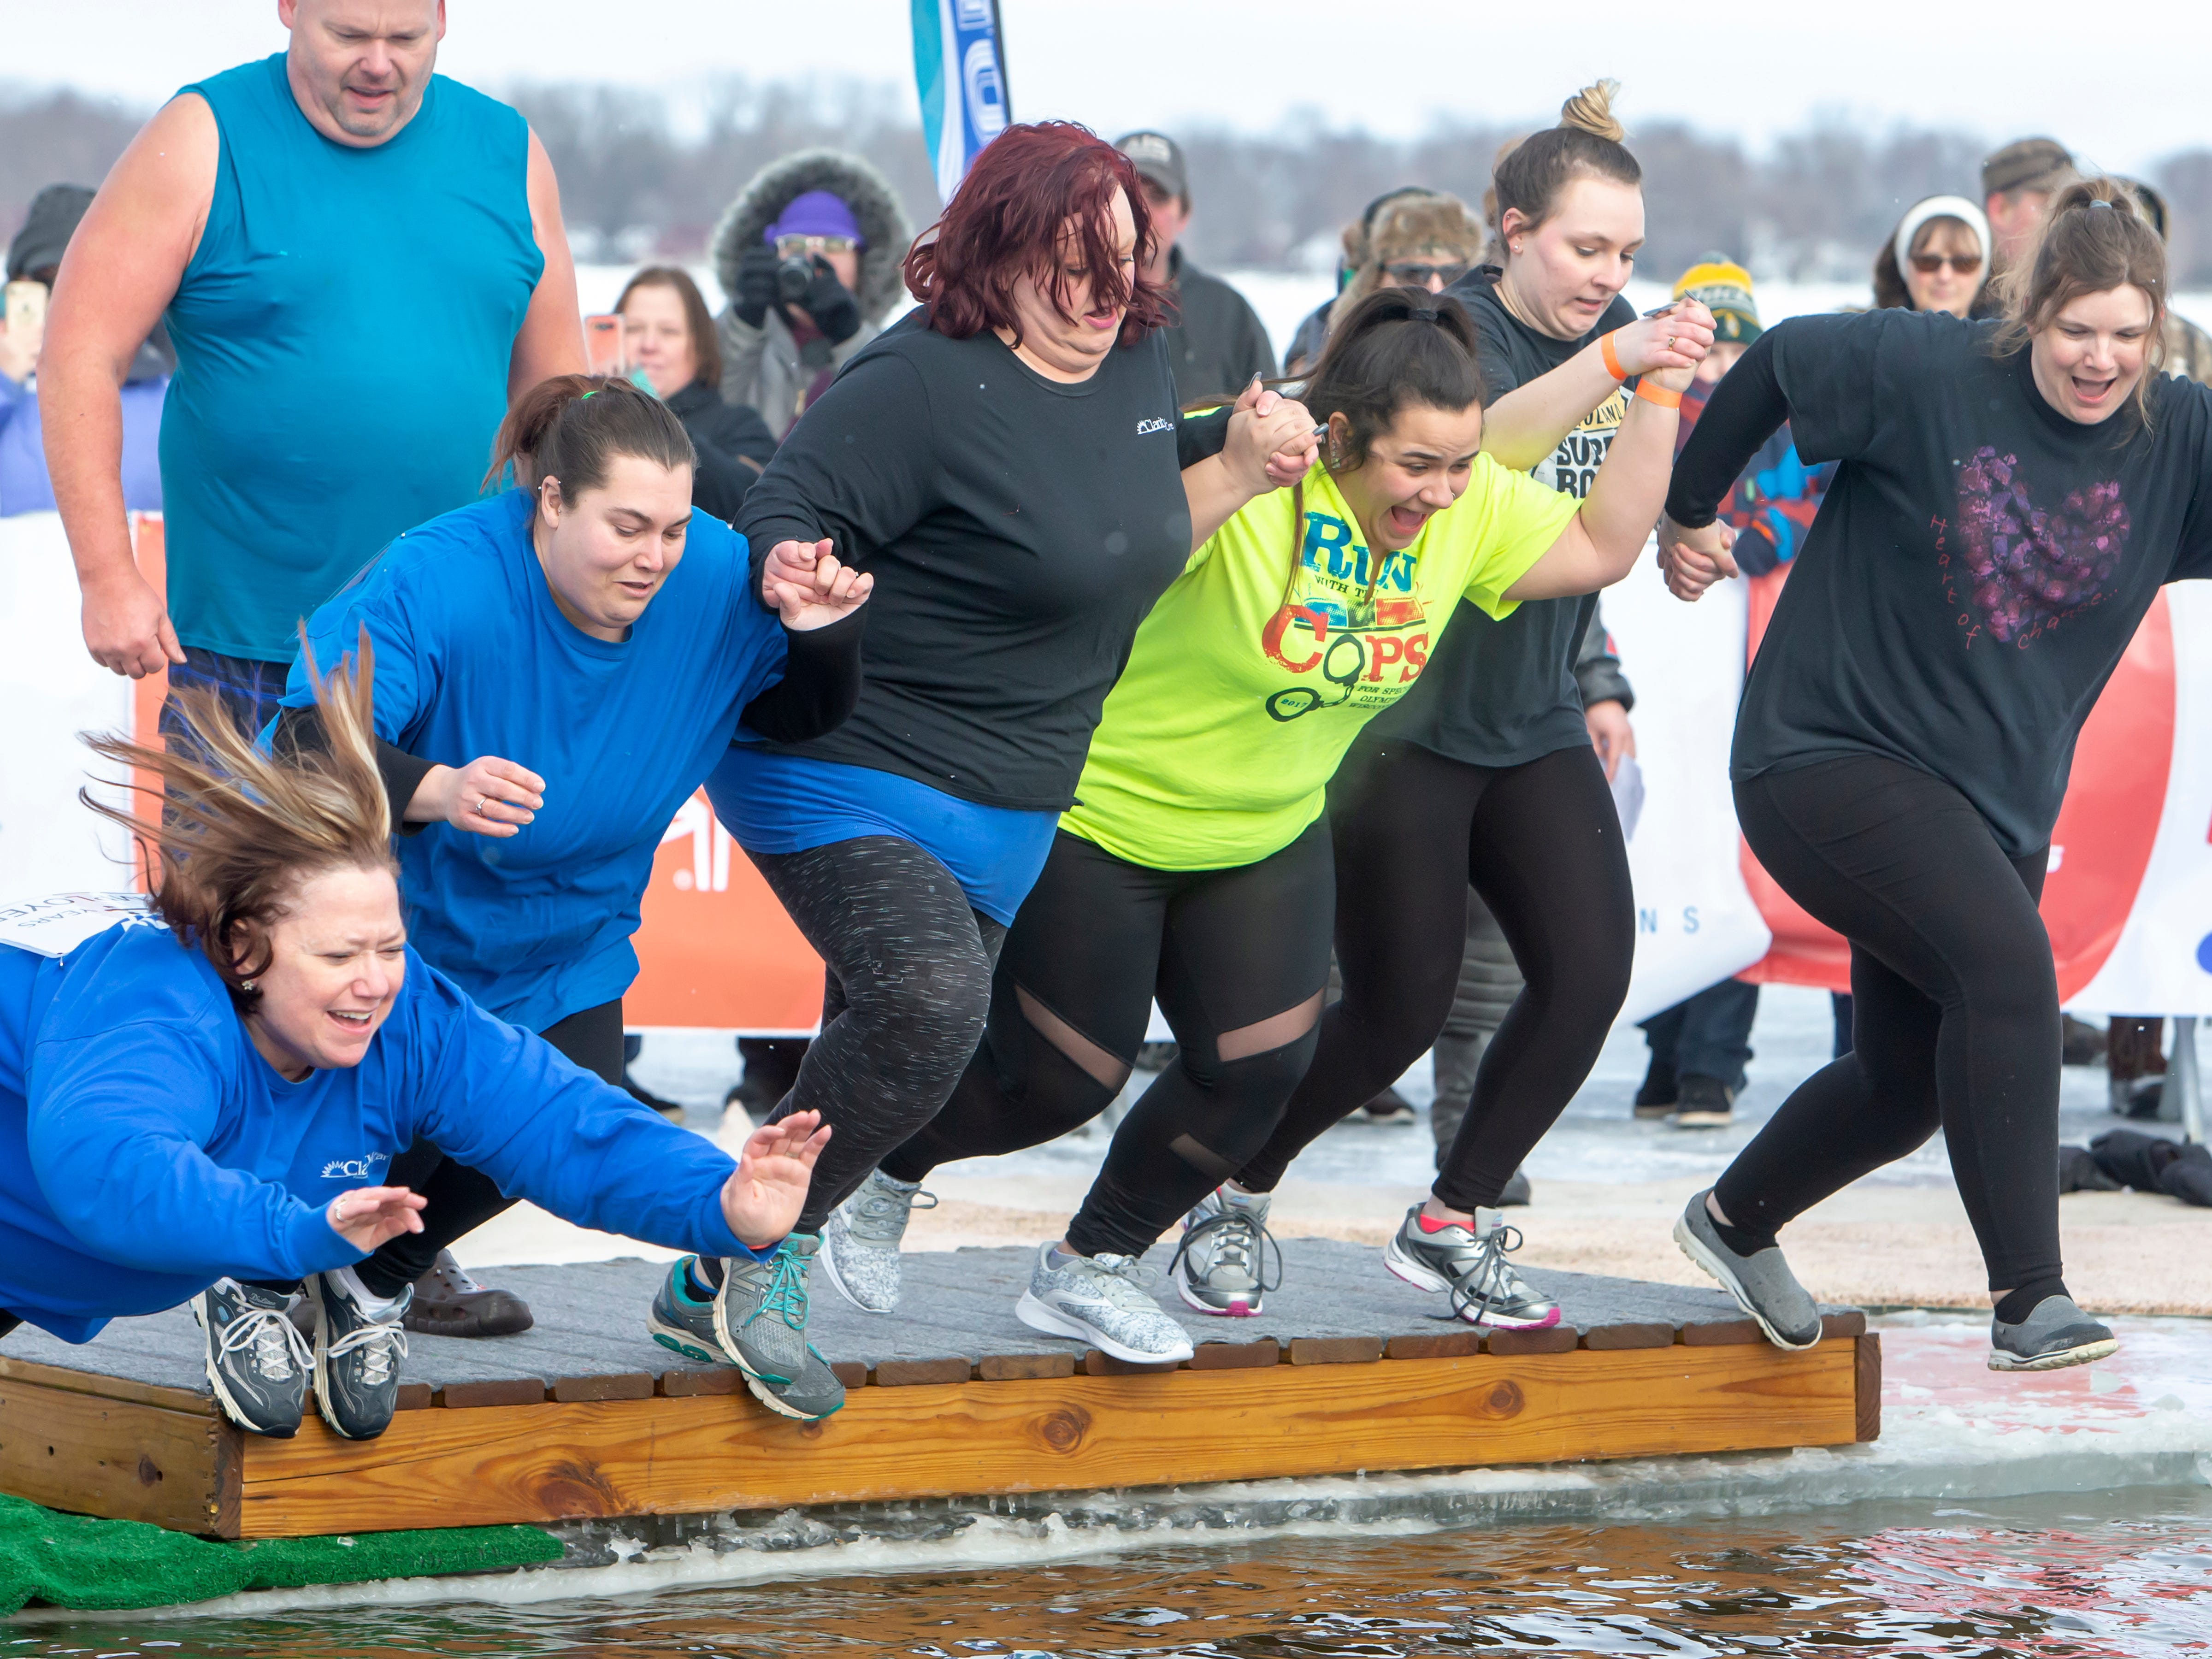 Clarity Care employees jump into the cold water during the Special Olympics Wisconsin Polar Plunge in Oshkosh, Wis., on Saturday, February 16, 2019, at Miller's Bay in Menominee Park.